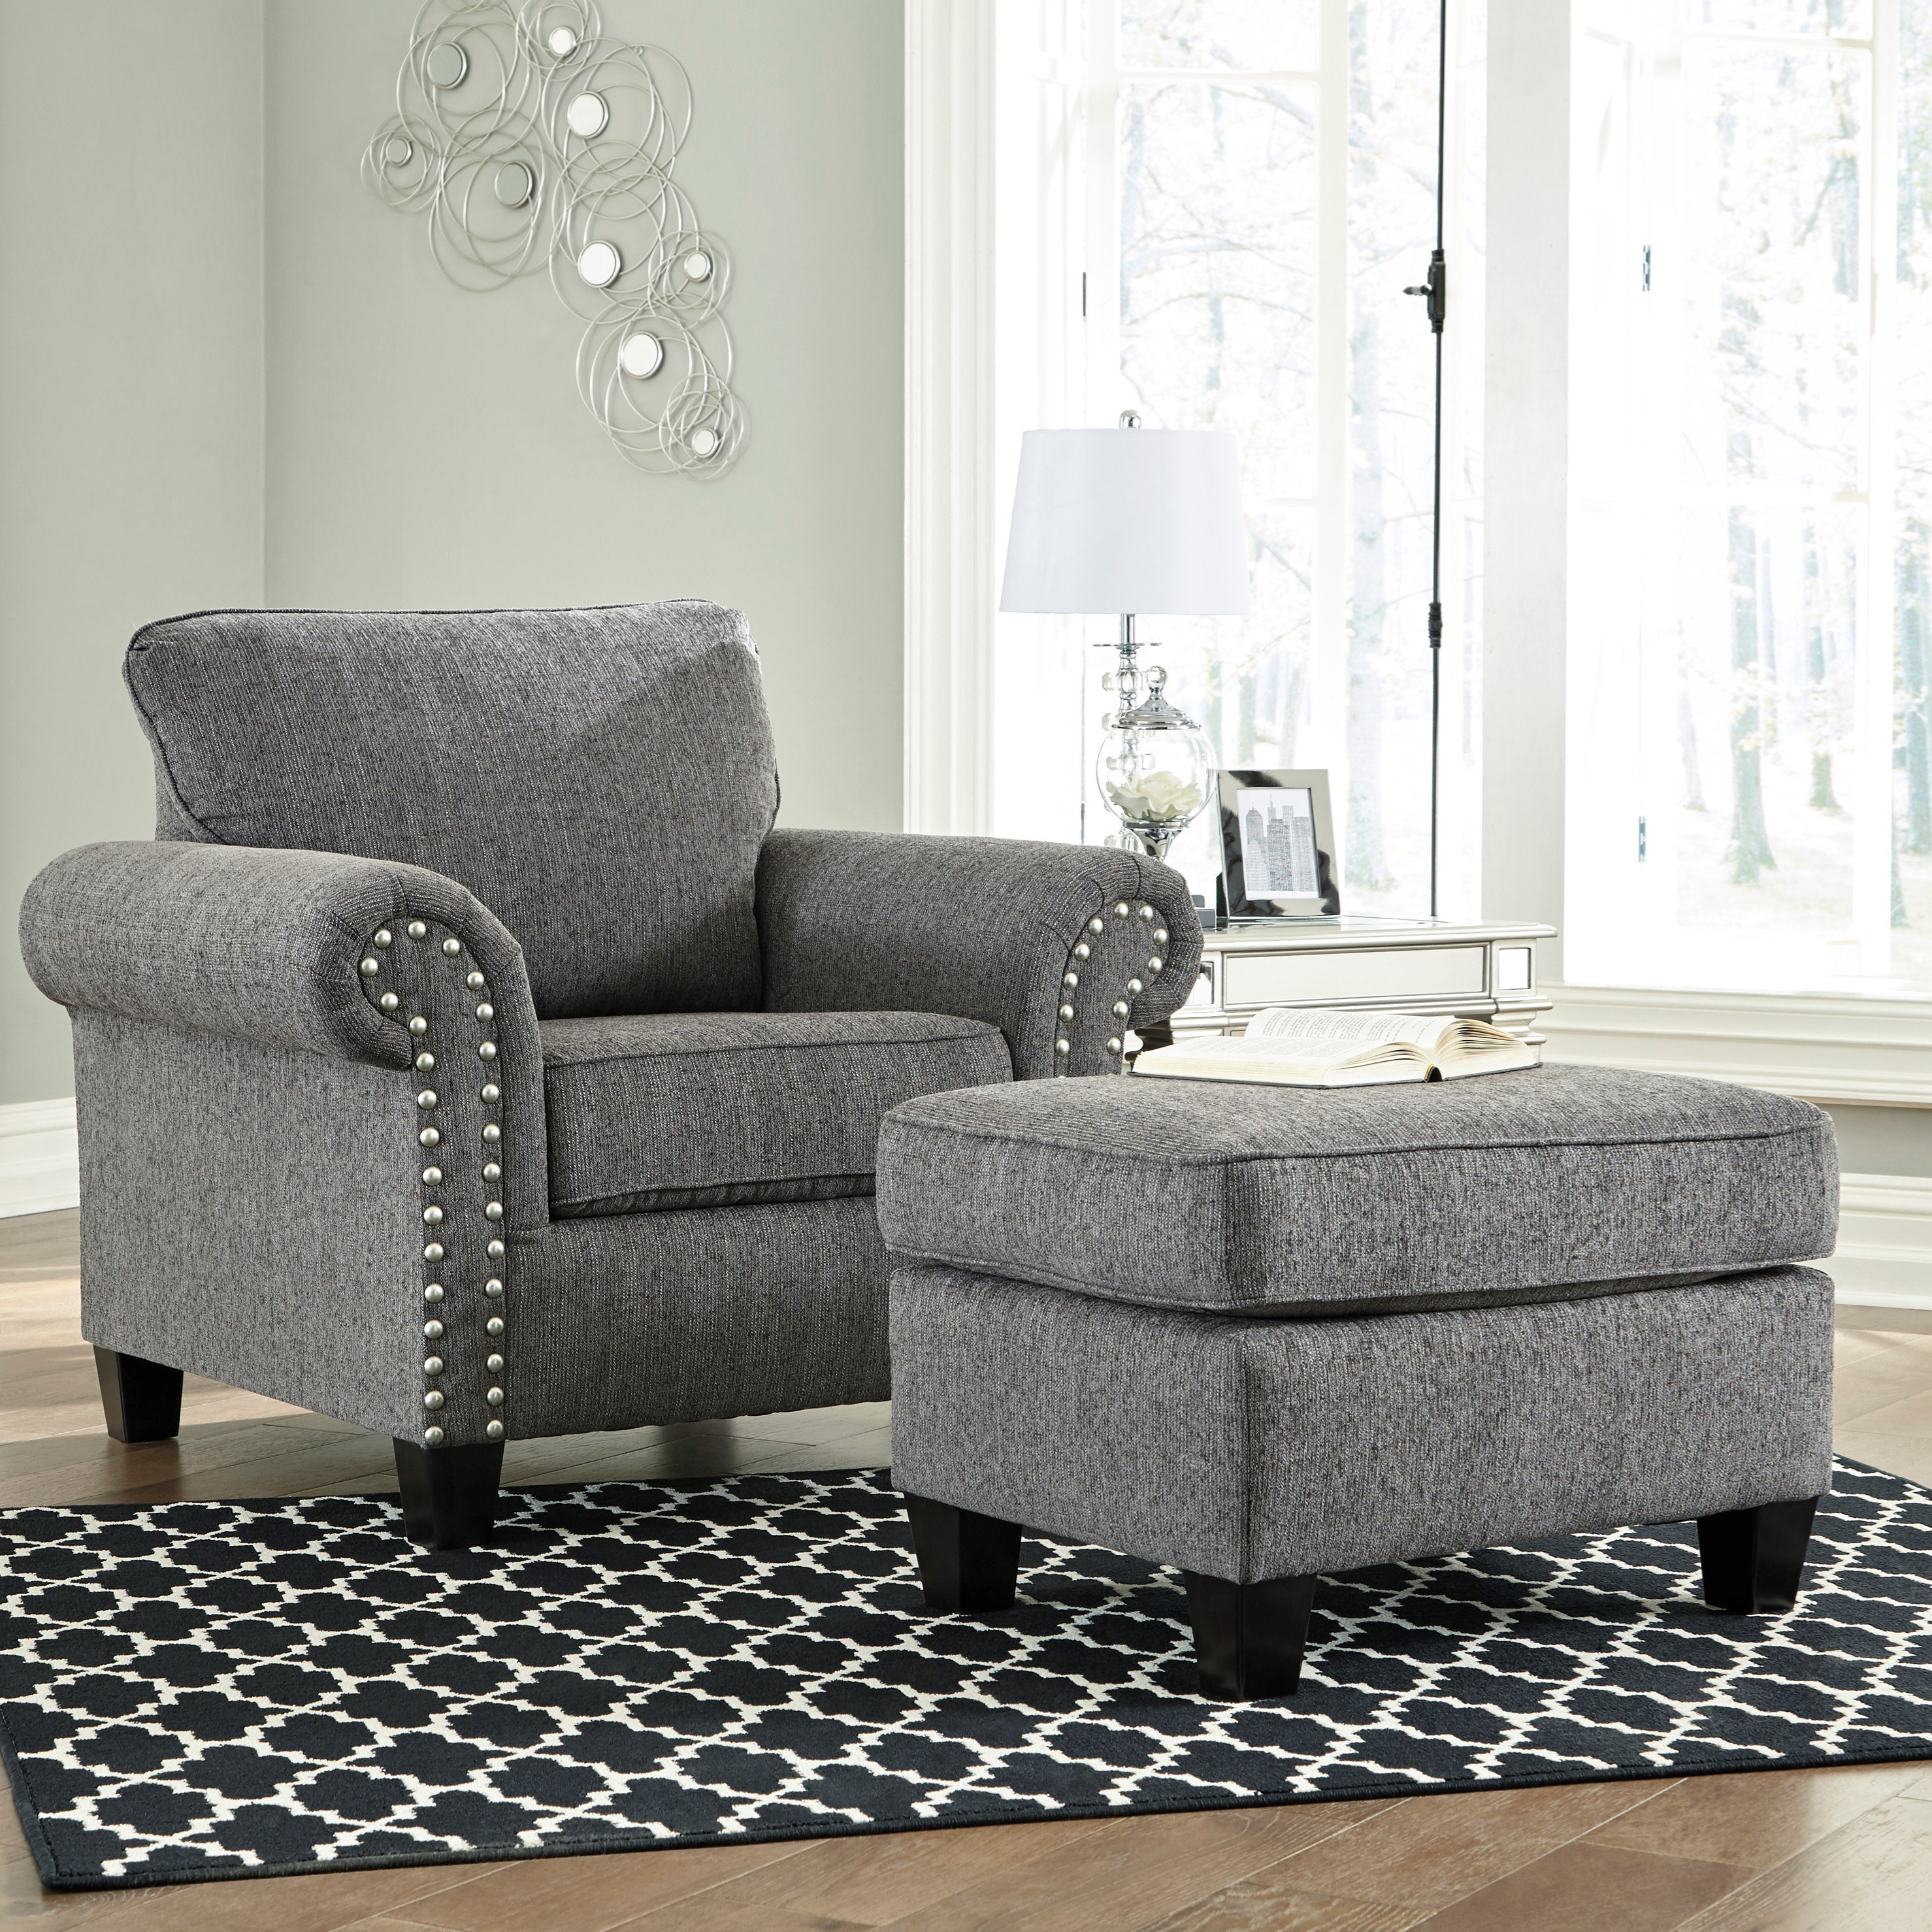 Agleno Chair and Ottoman by Benchcraft at Standard Furniture